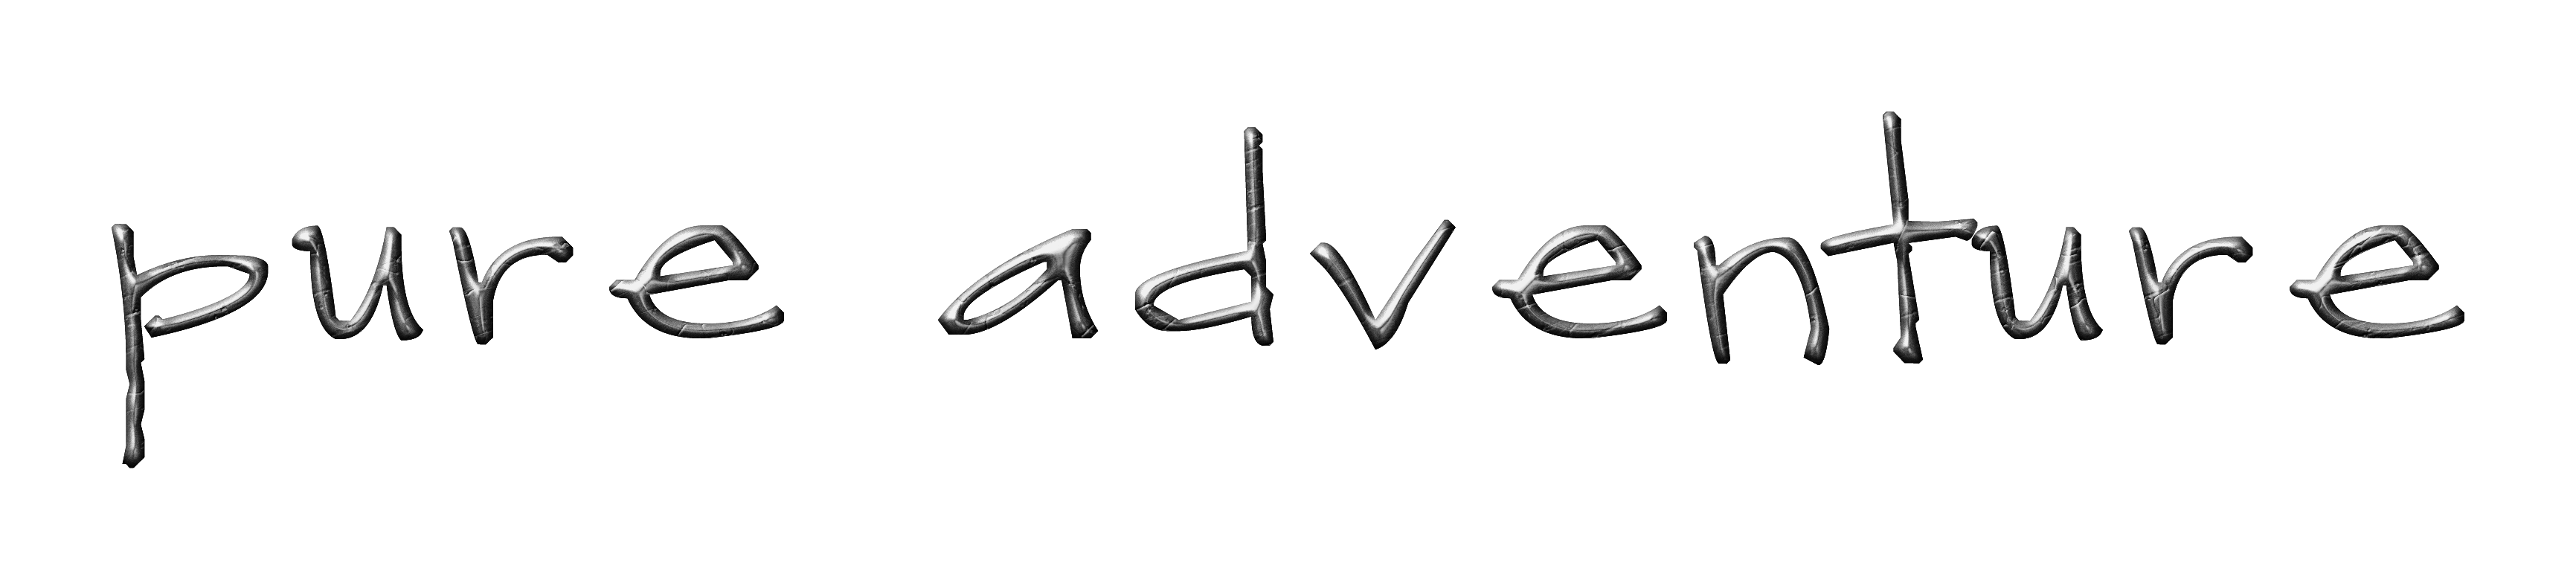 Adventure Word Png - Called To A Bigger Adventure, Transparent background PNG HD thumbnail